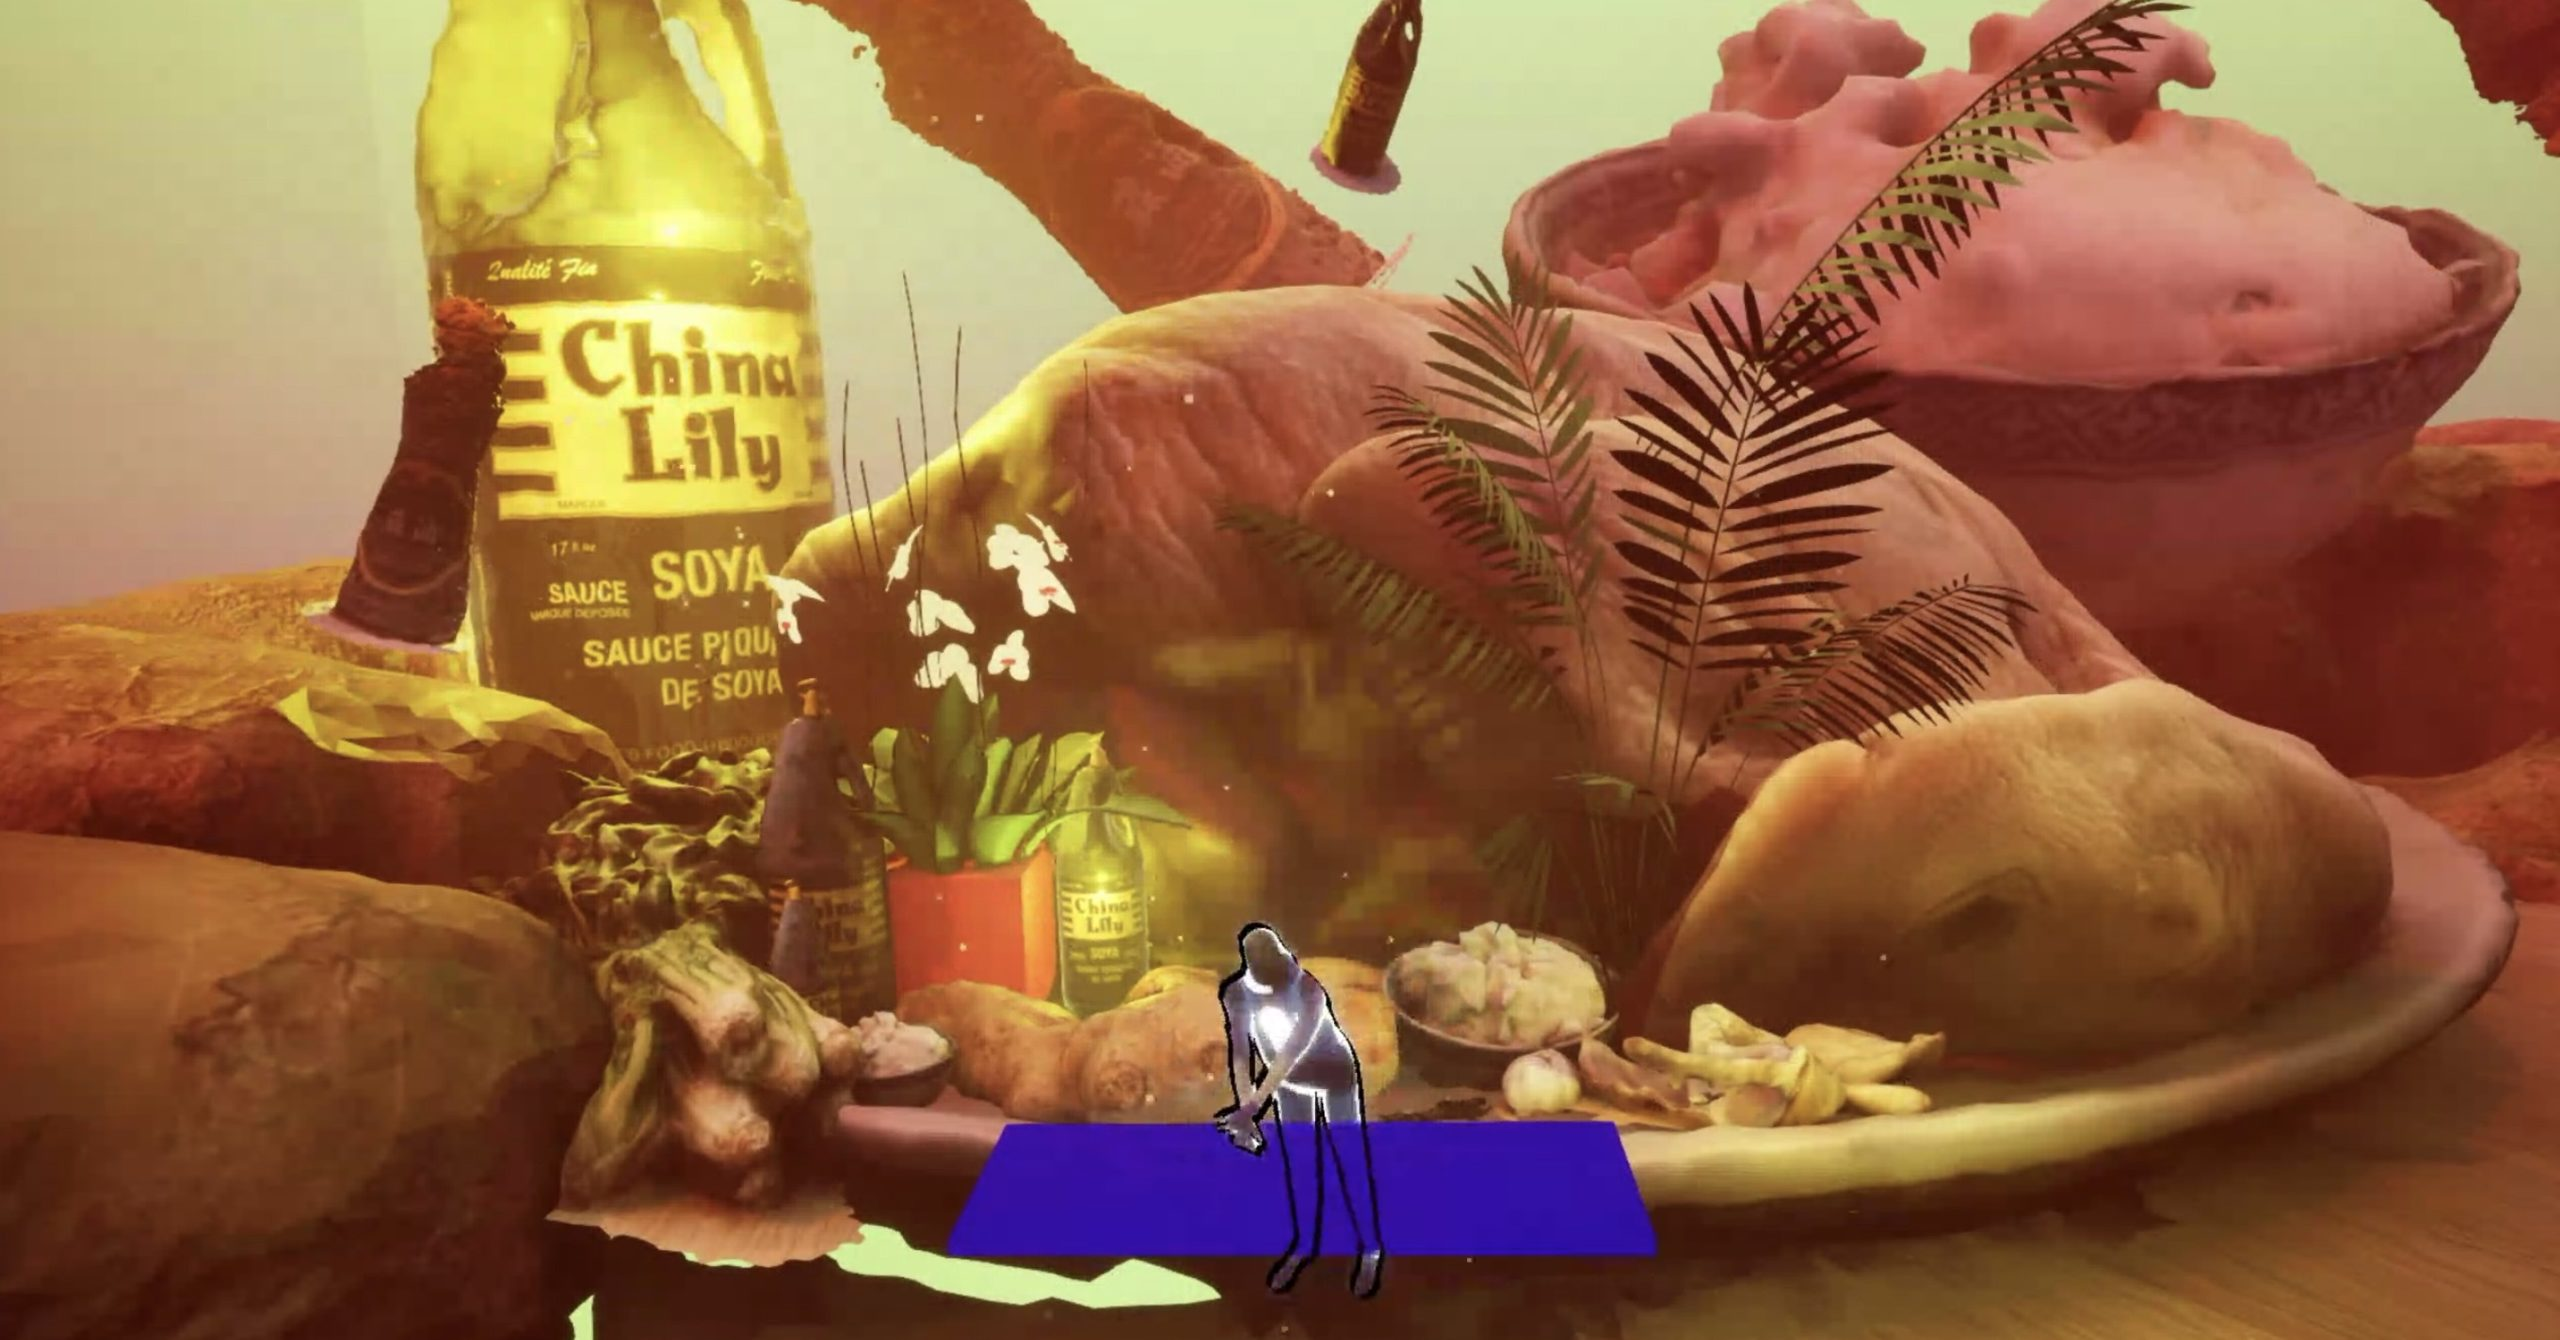 A digital collage of a close-up of chicken and other ingredients. It is mostly orange. On the bottom middle of the screen is a transluscent avatar standing in front of a deep blue table.